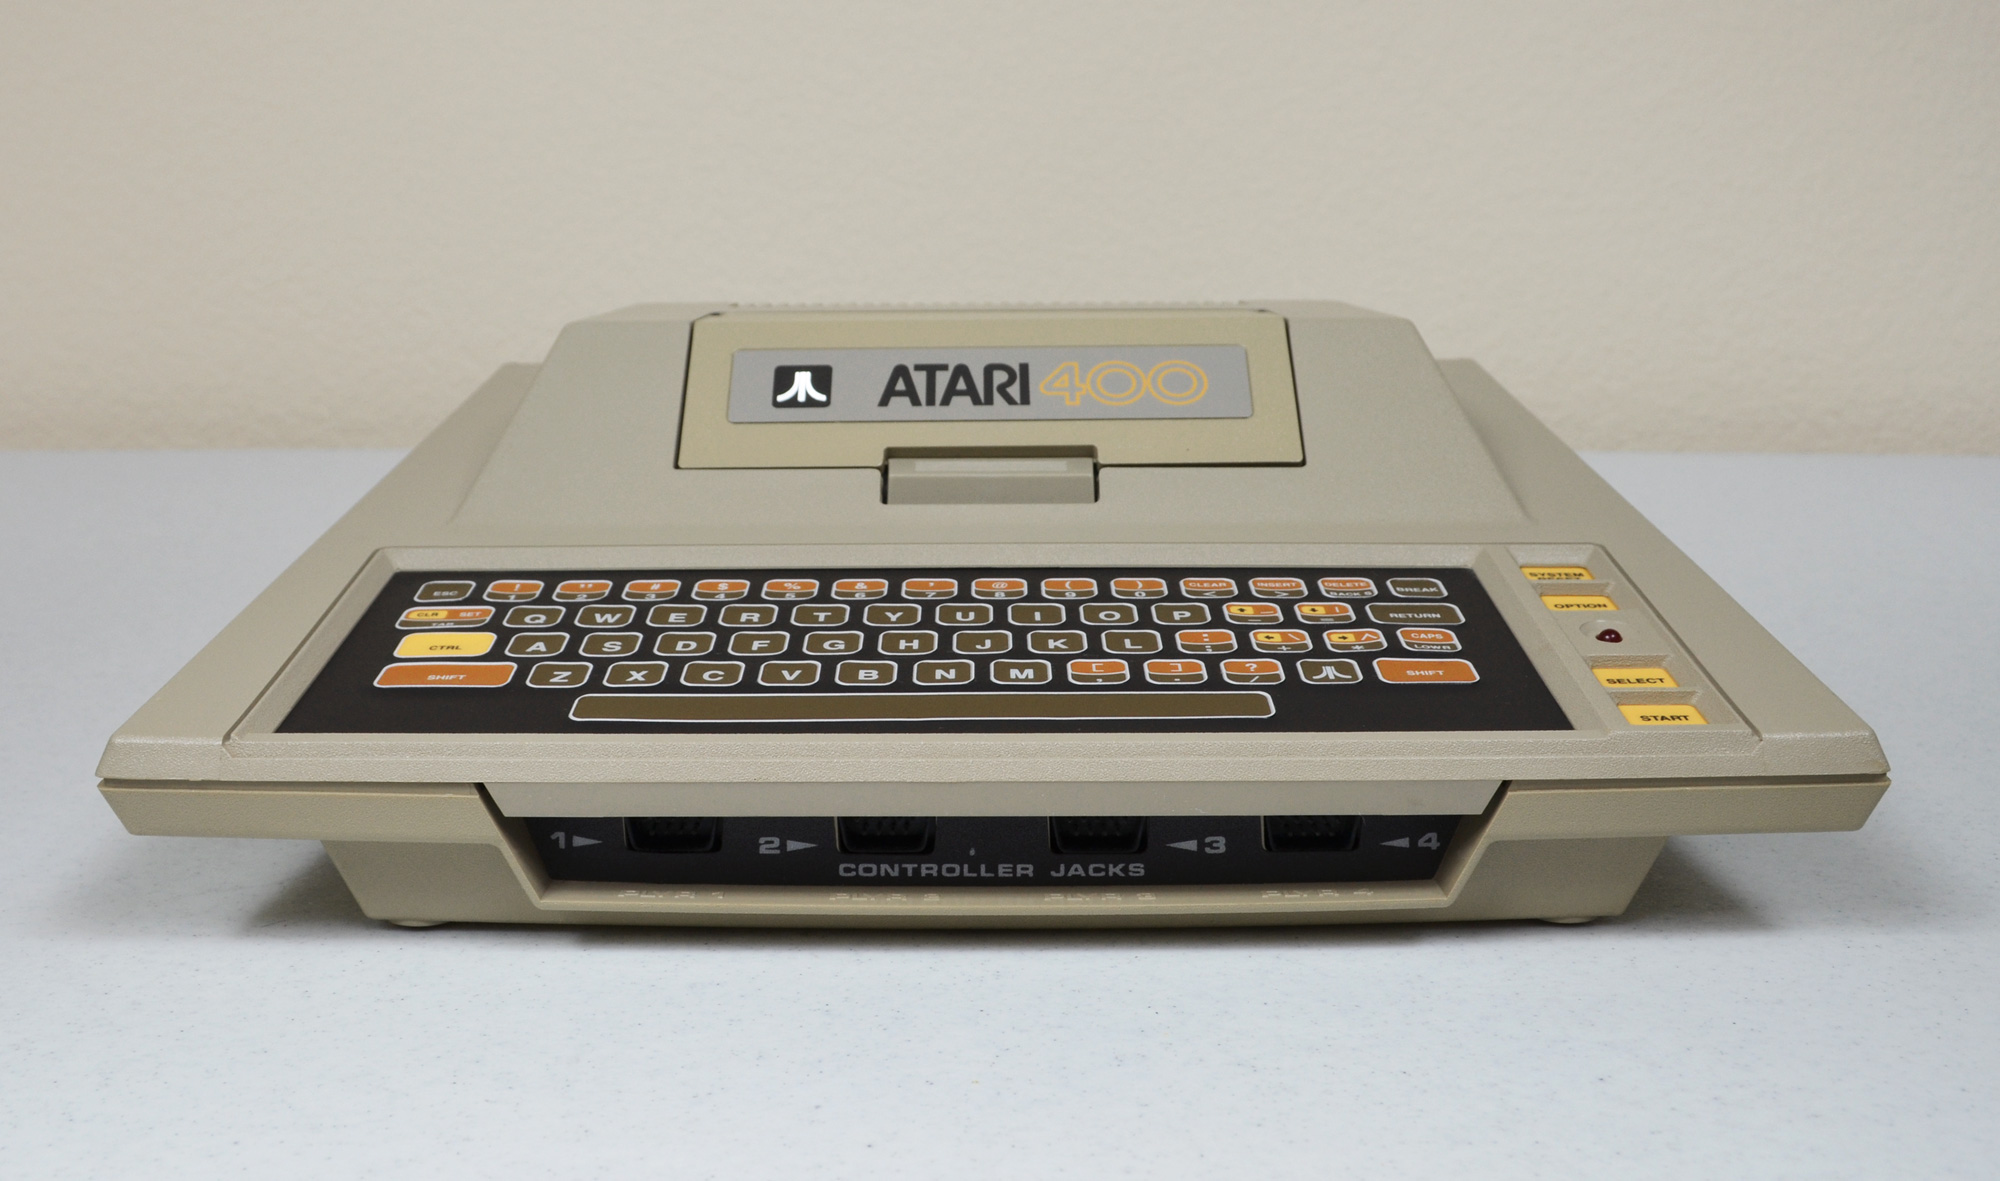 Images of Atari 400 | 2000x1181